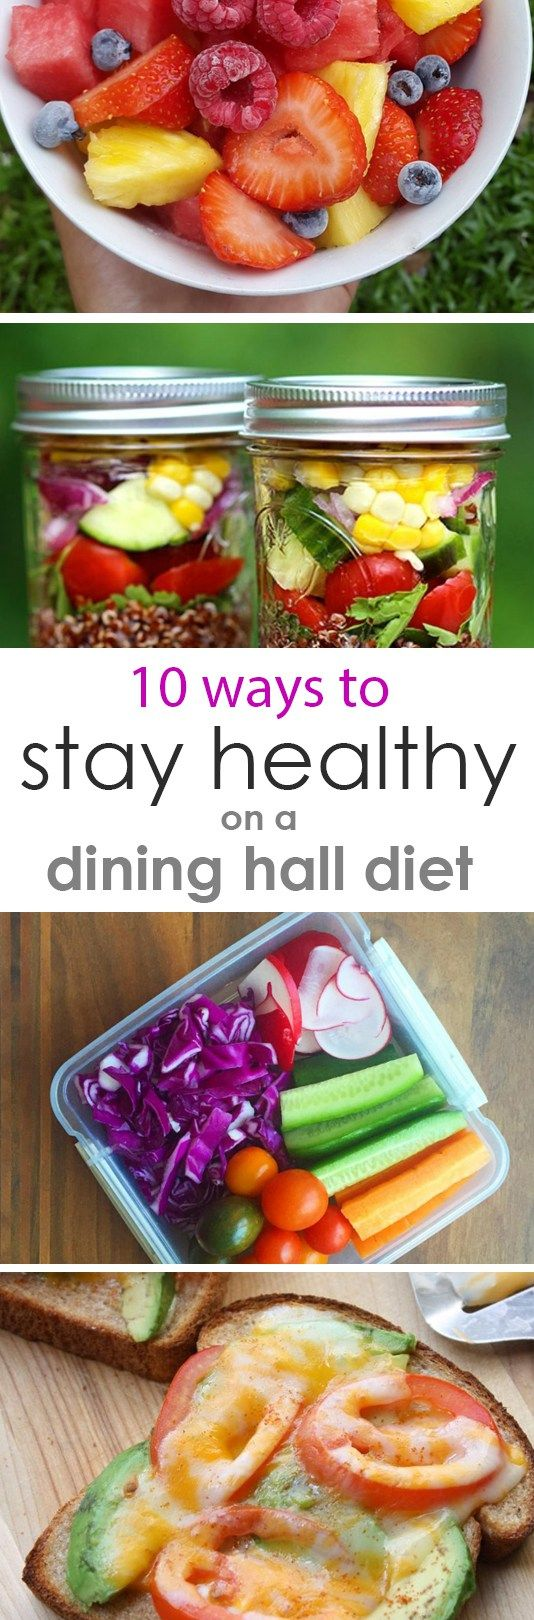 10 Ways to Stay Healthy on a College Dining Hall Diet                                                                                                                                                                                 More